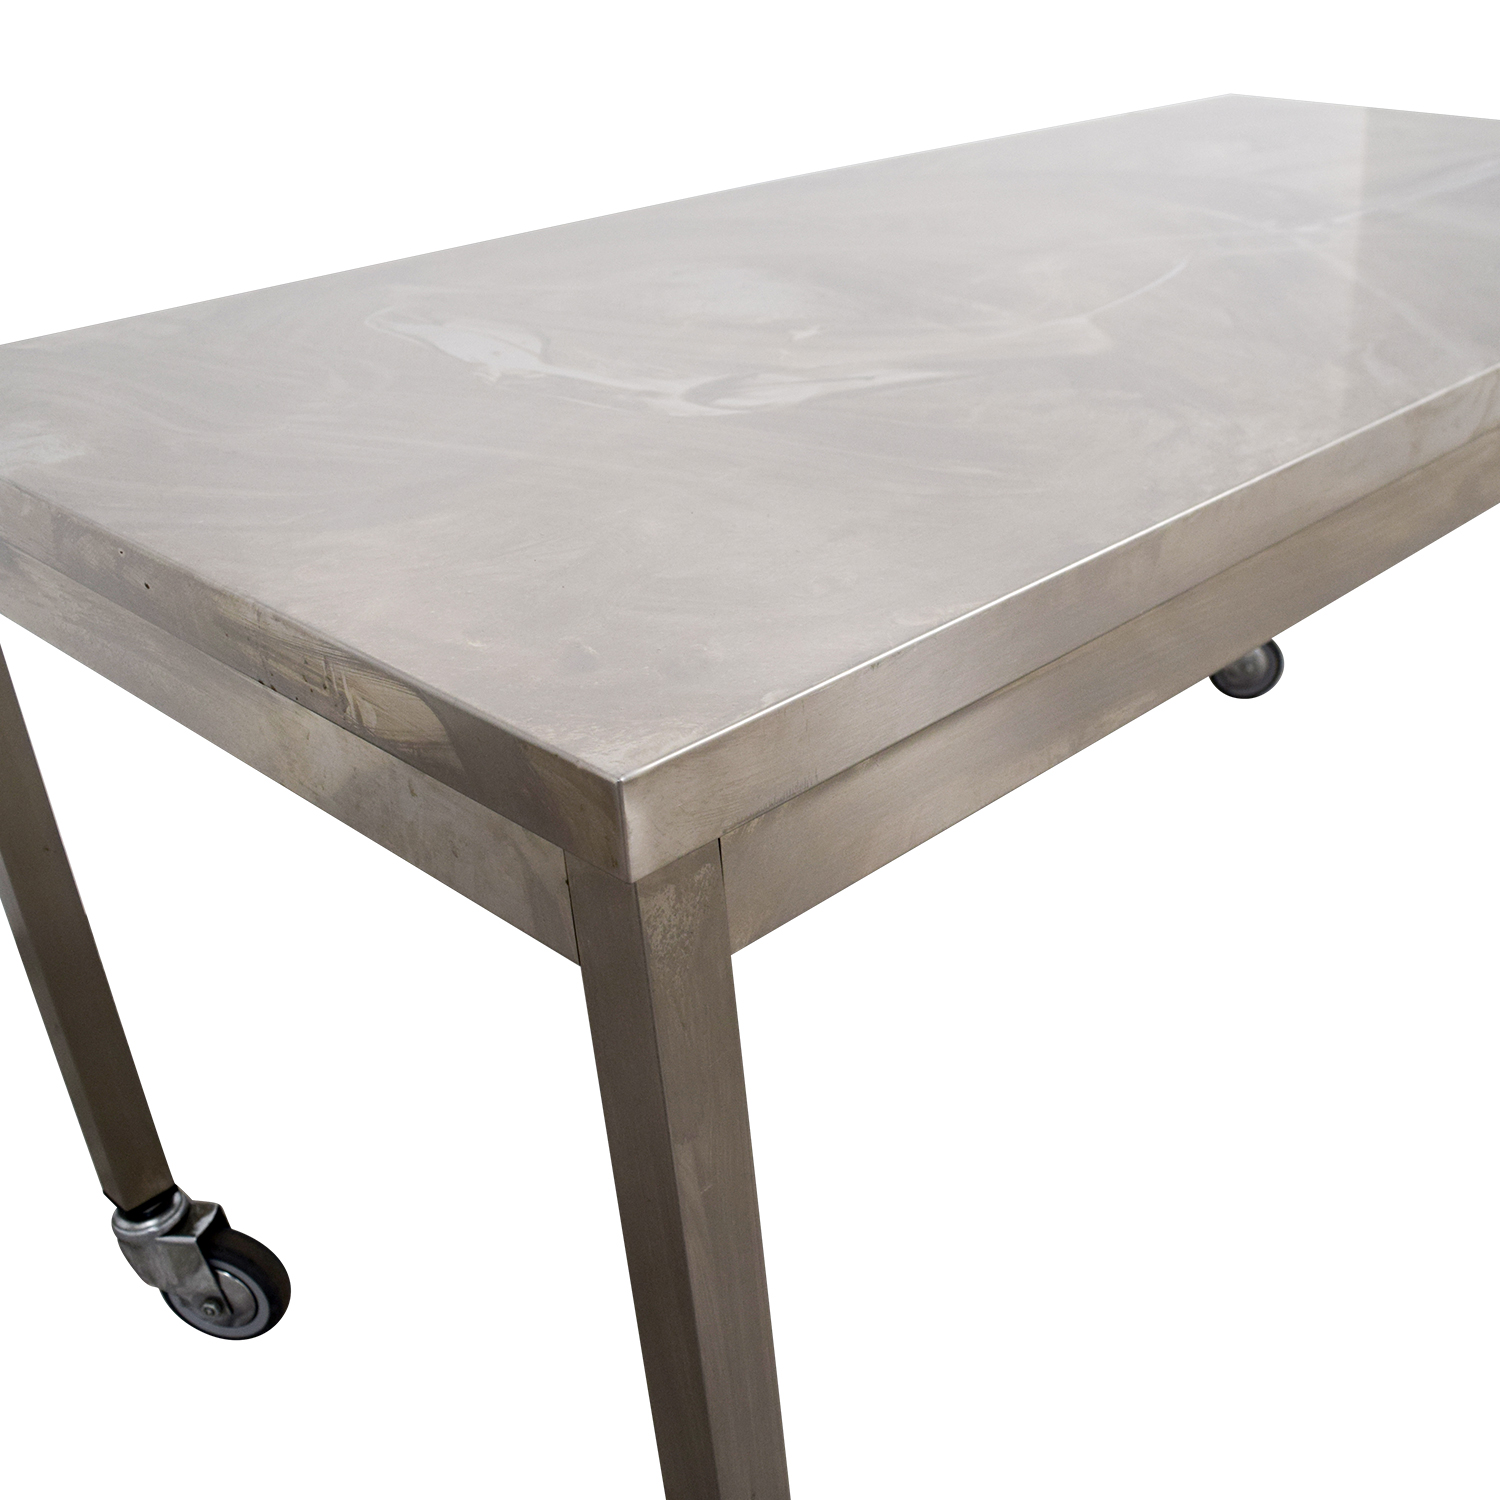 Ikea Norden 59% Off - Wheeled Utility Metal Table / Tables